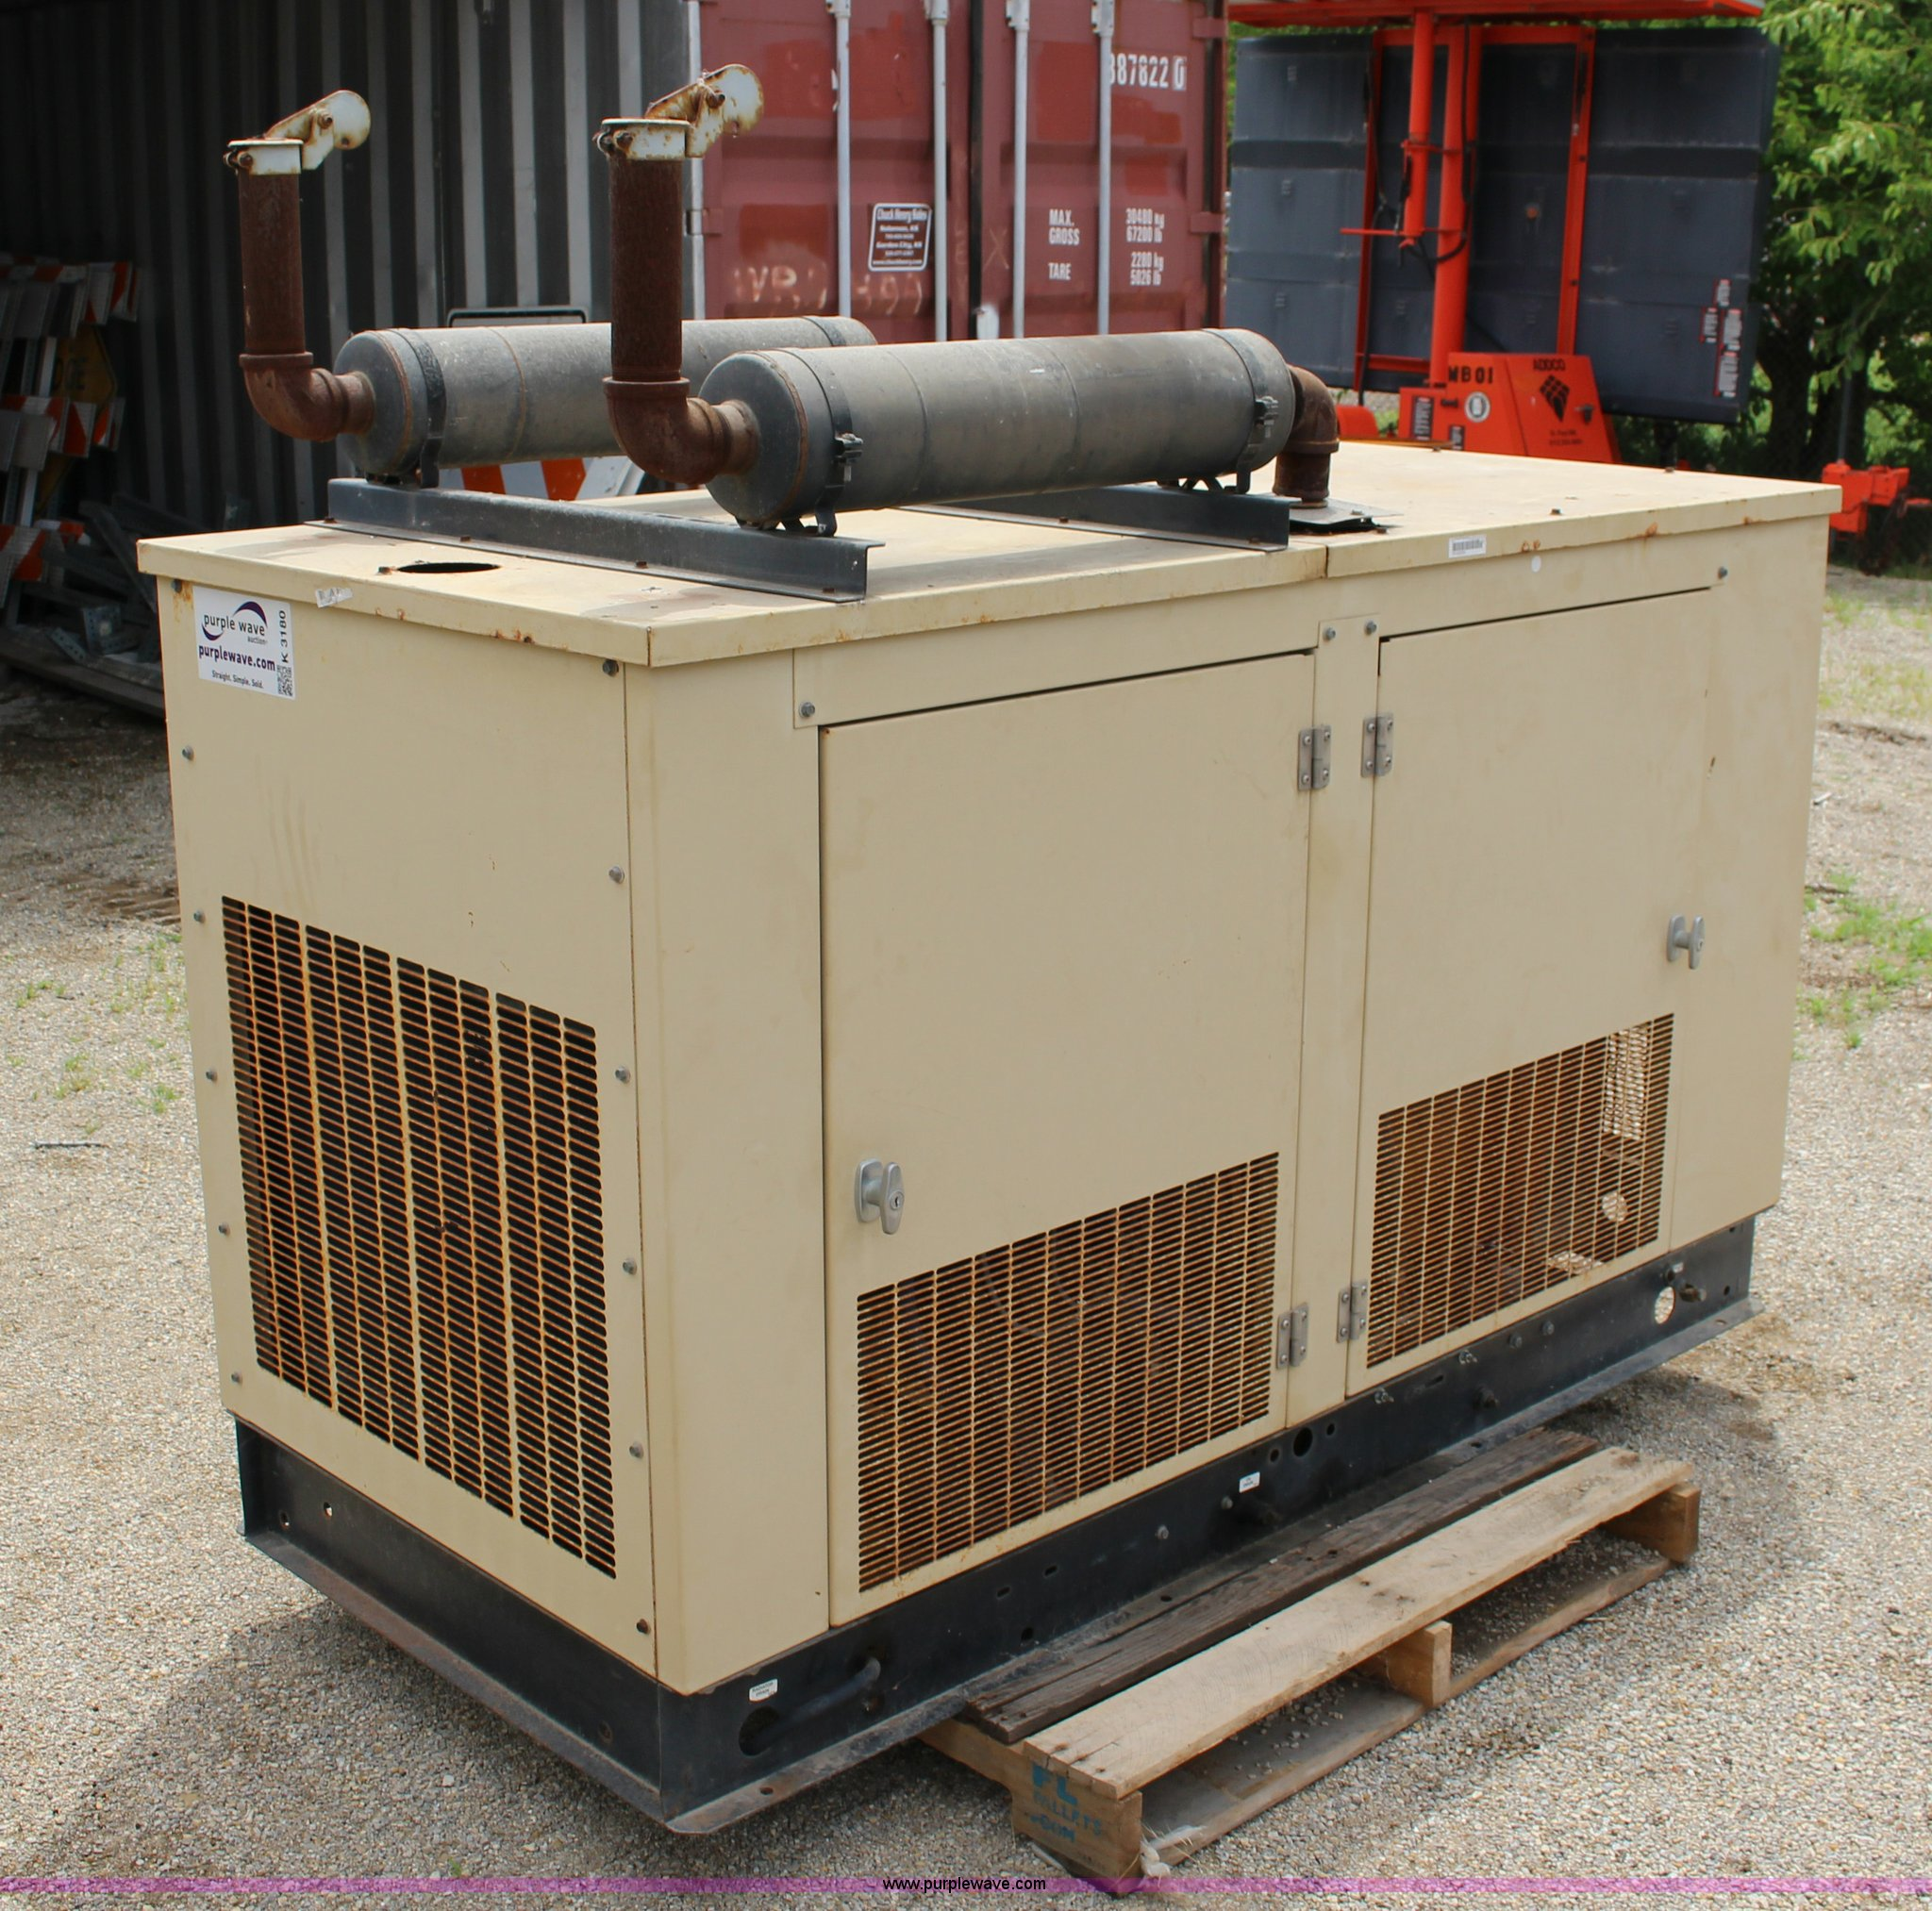 Generac generator | Item K3180 | SOLD! August 2 Government A